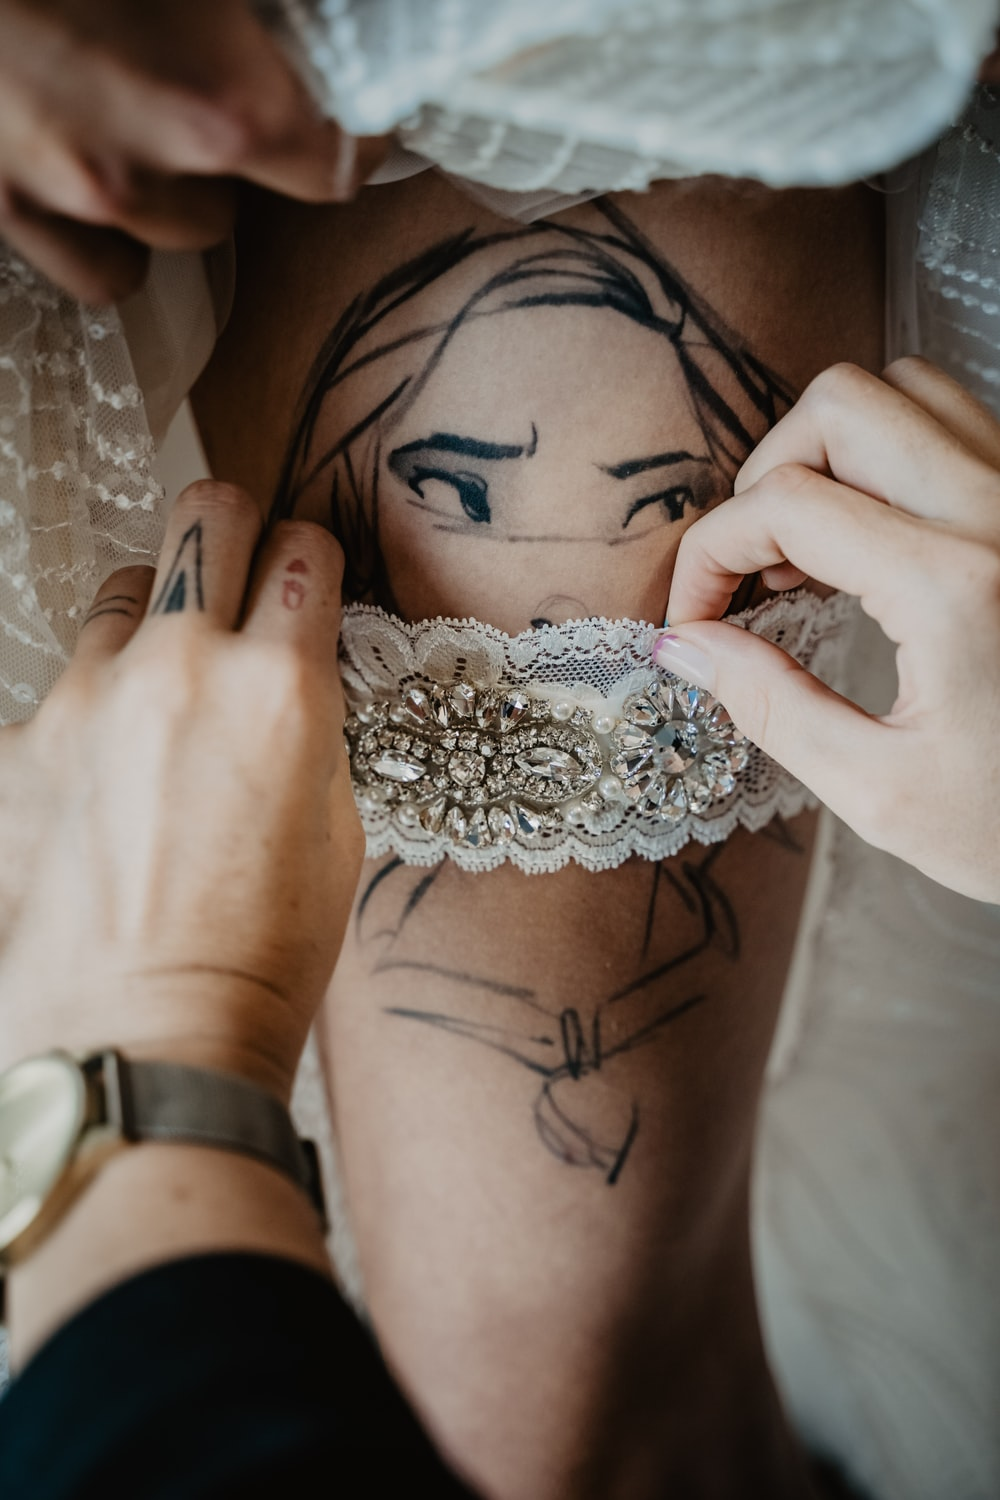 Common mistakes of Infliction Tattoo that you need to avoid